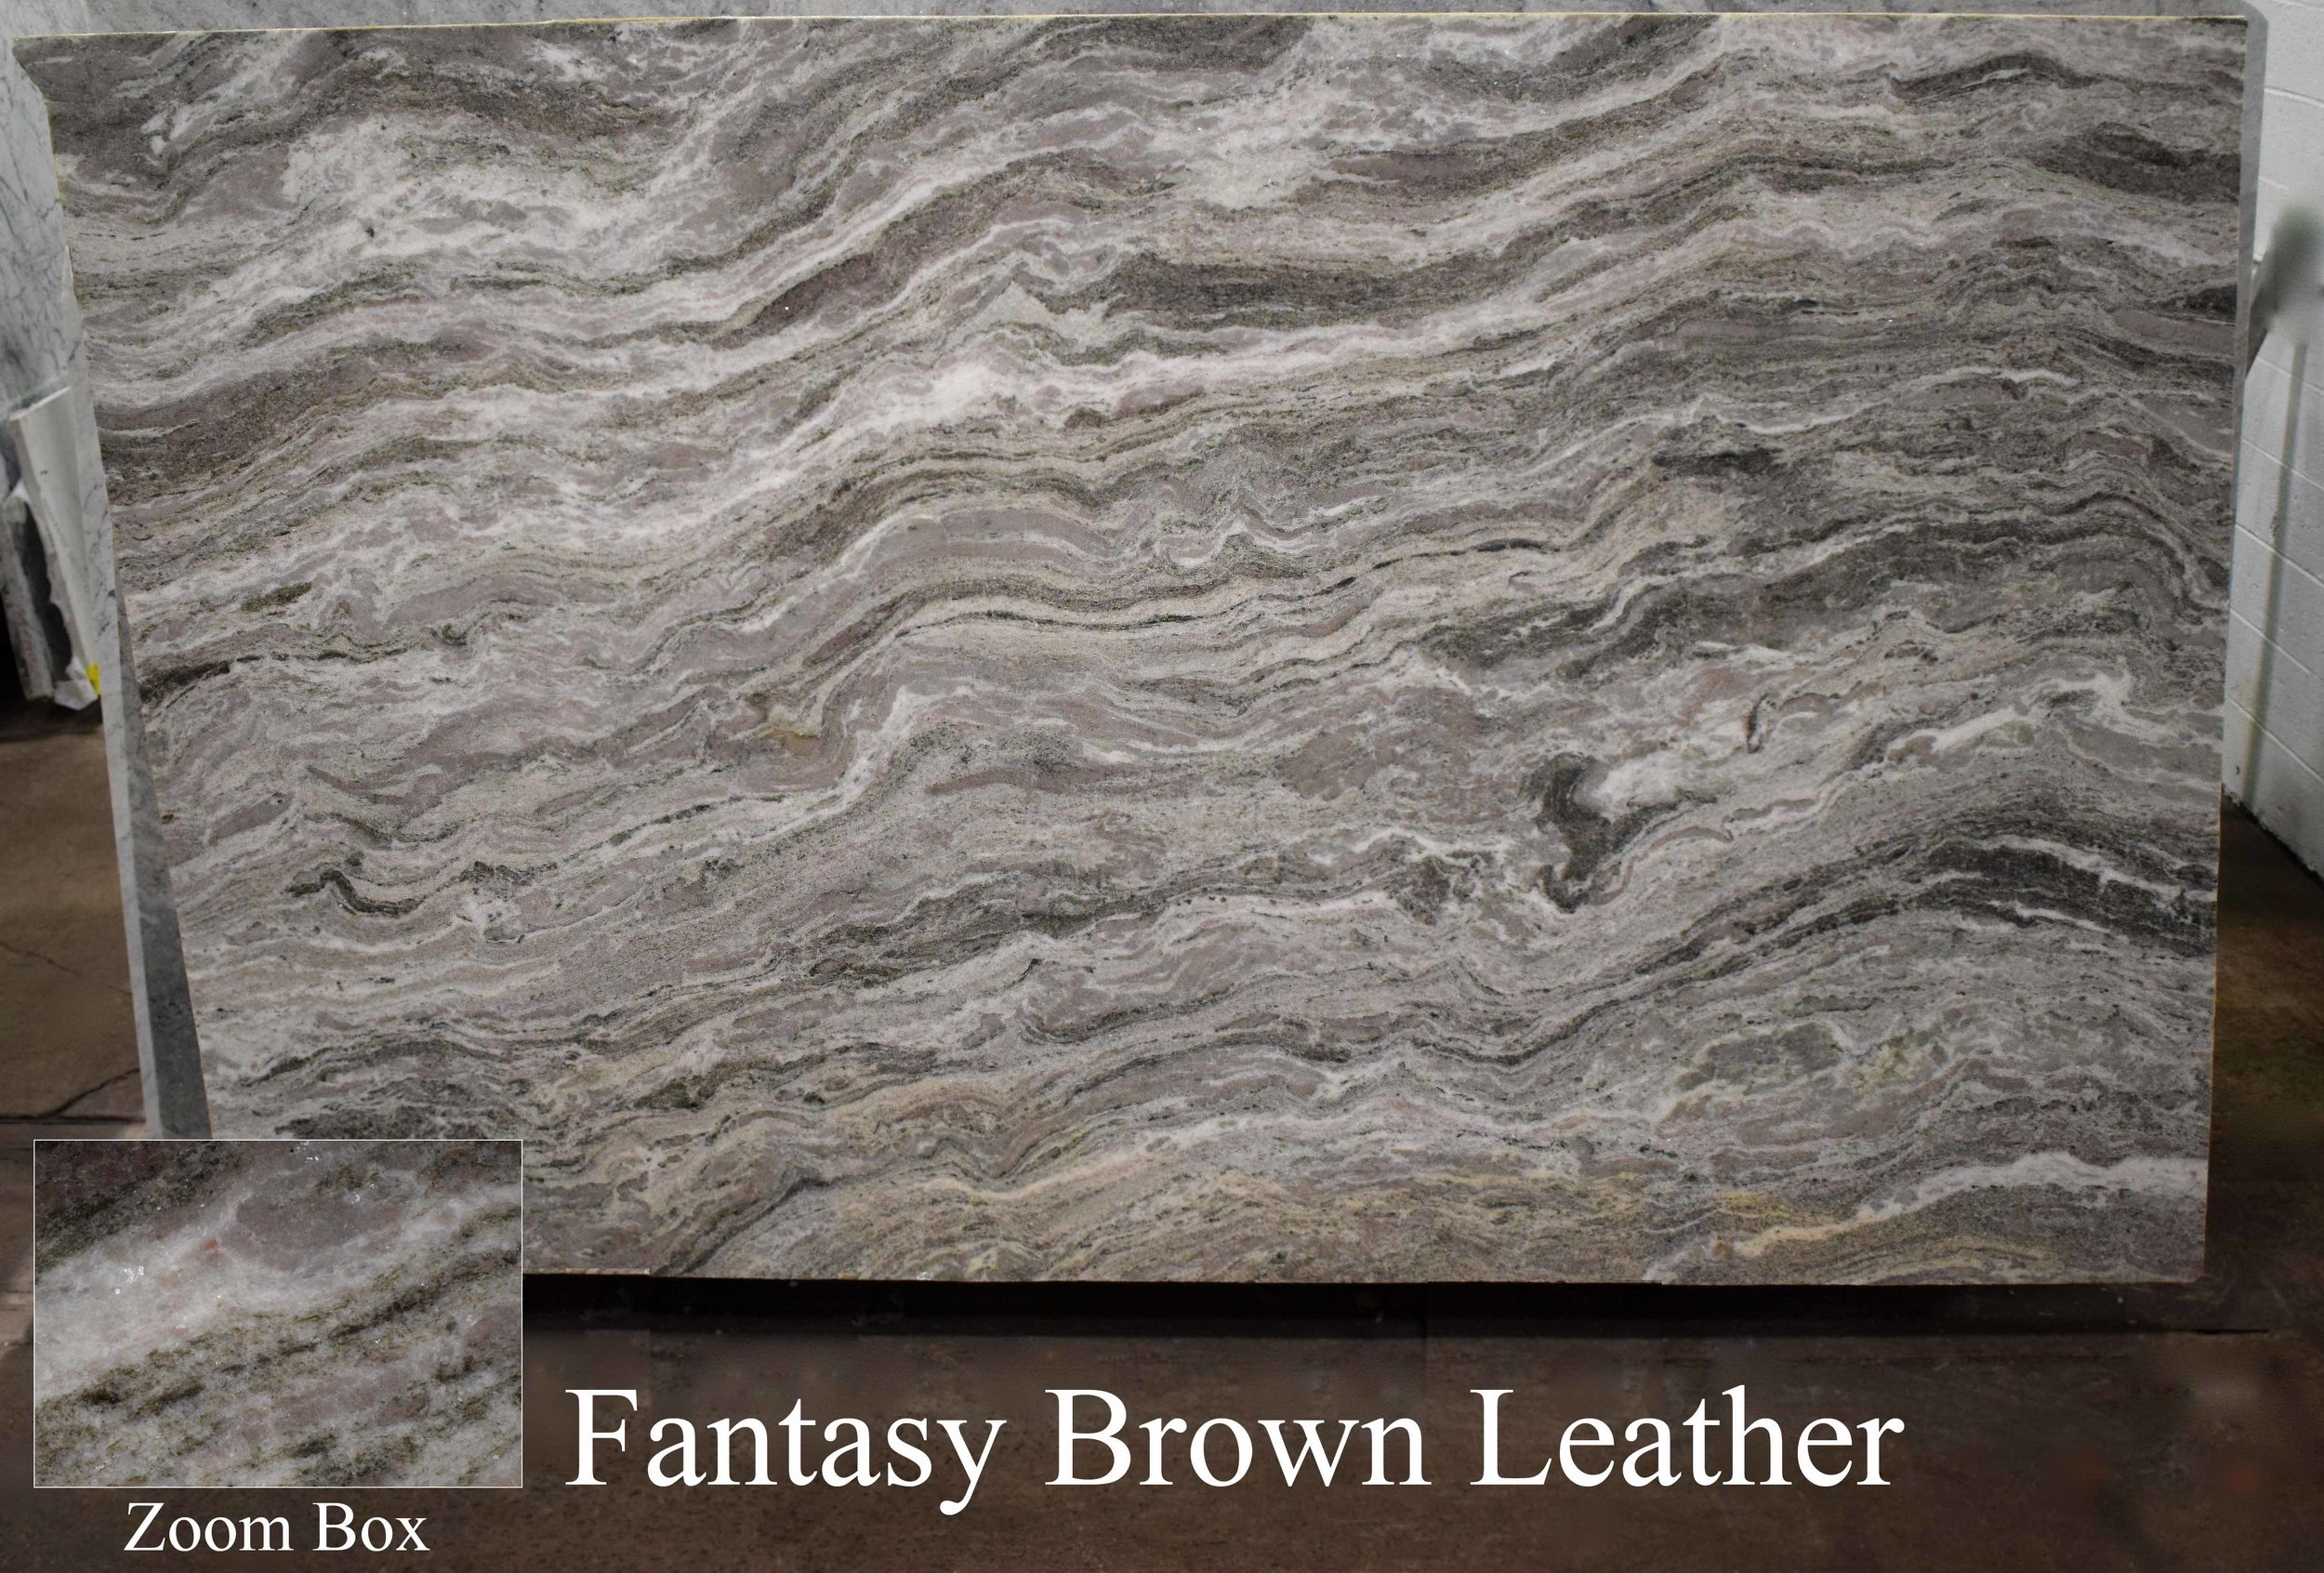 FANTASY BROWN LEATHER